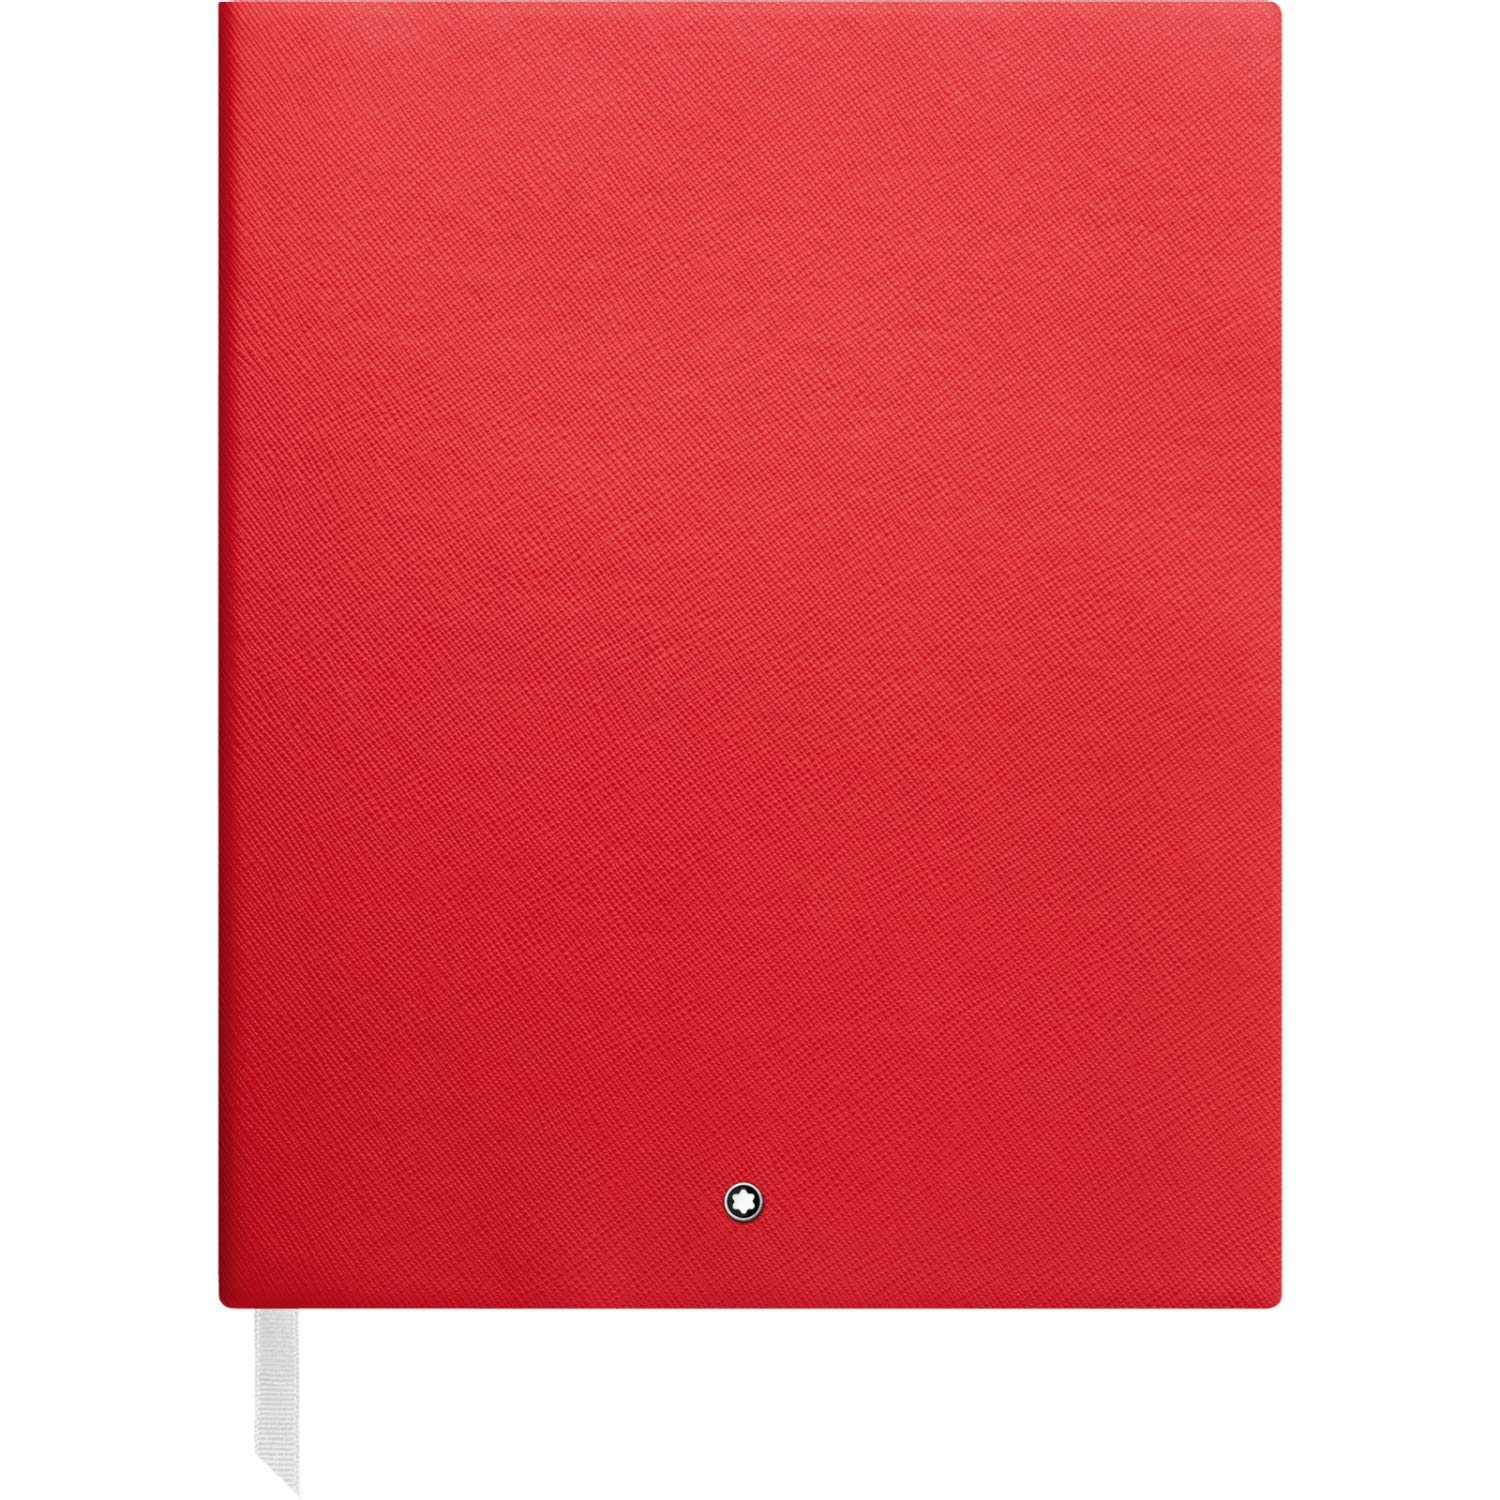 Sta Sketch Book #149 Red Large by MONTBLANC